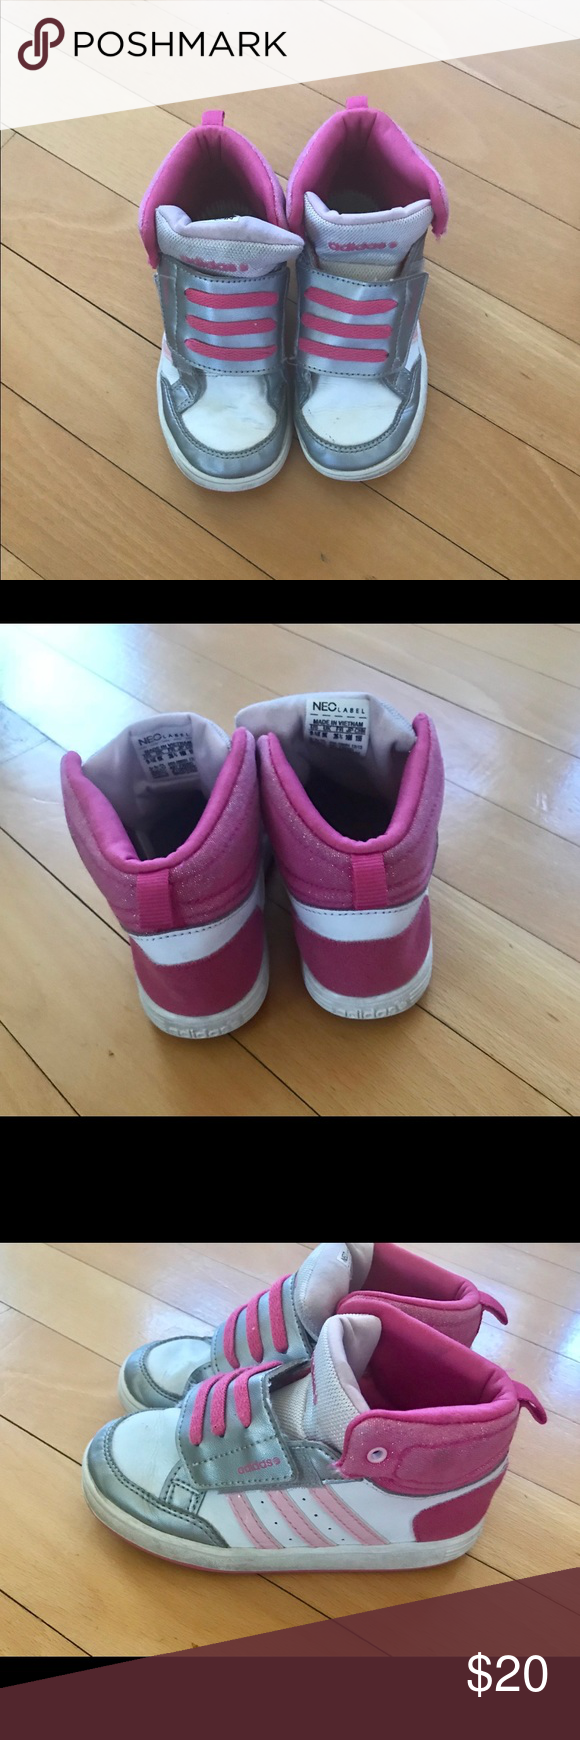 Adidas Adidas Shoes Girls Toddler 19912 Shoes tamaño | 6c27be3 - allergistofbrug.website